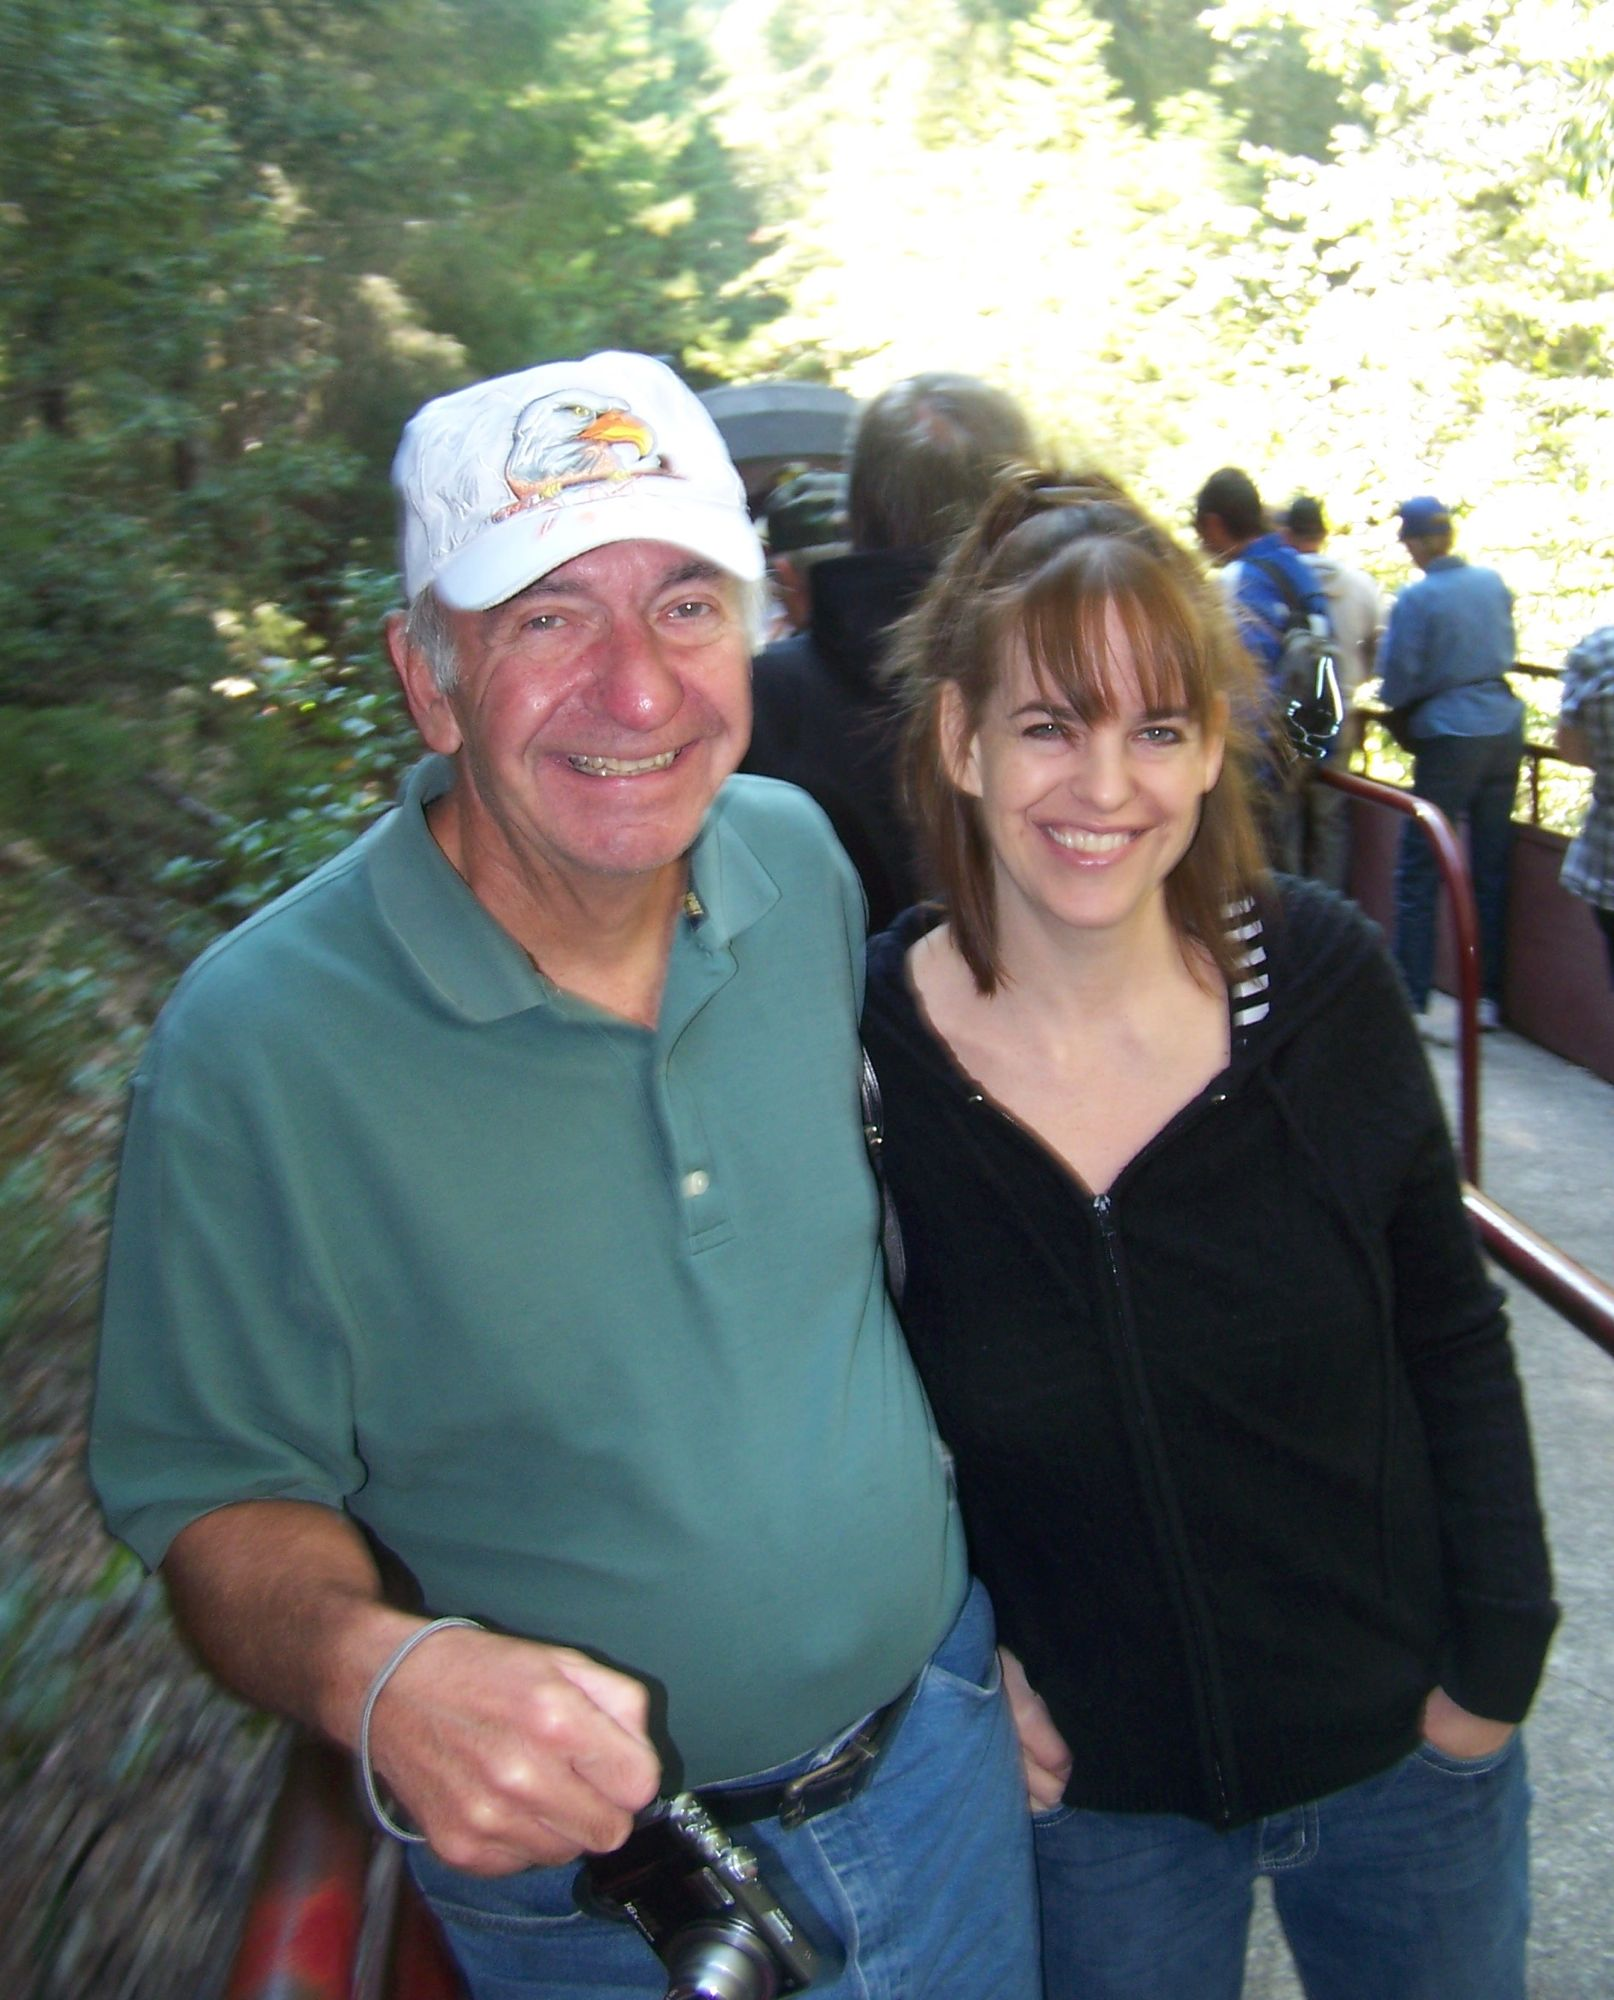 All aboard, the Mendocino skunk train Aug 22, 2014. Dad and Janine.